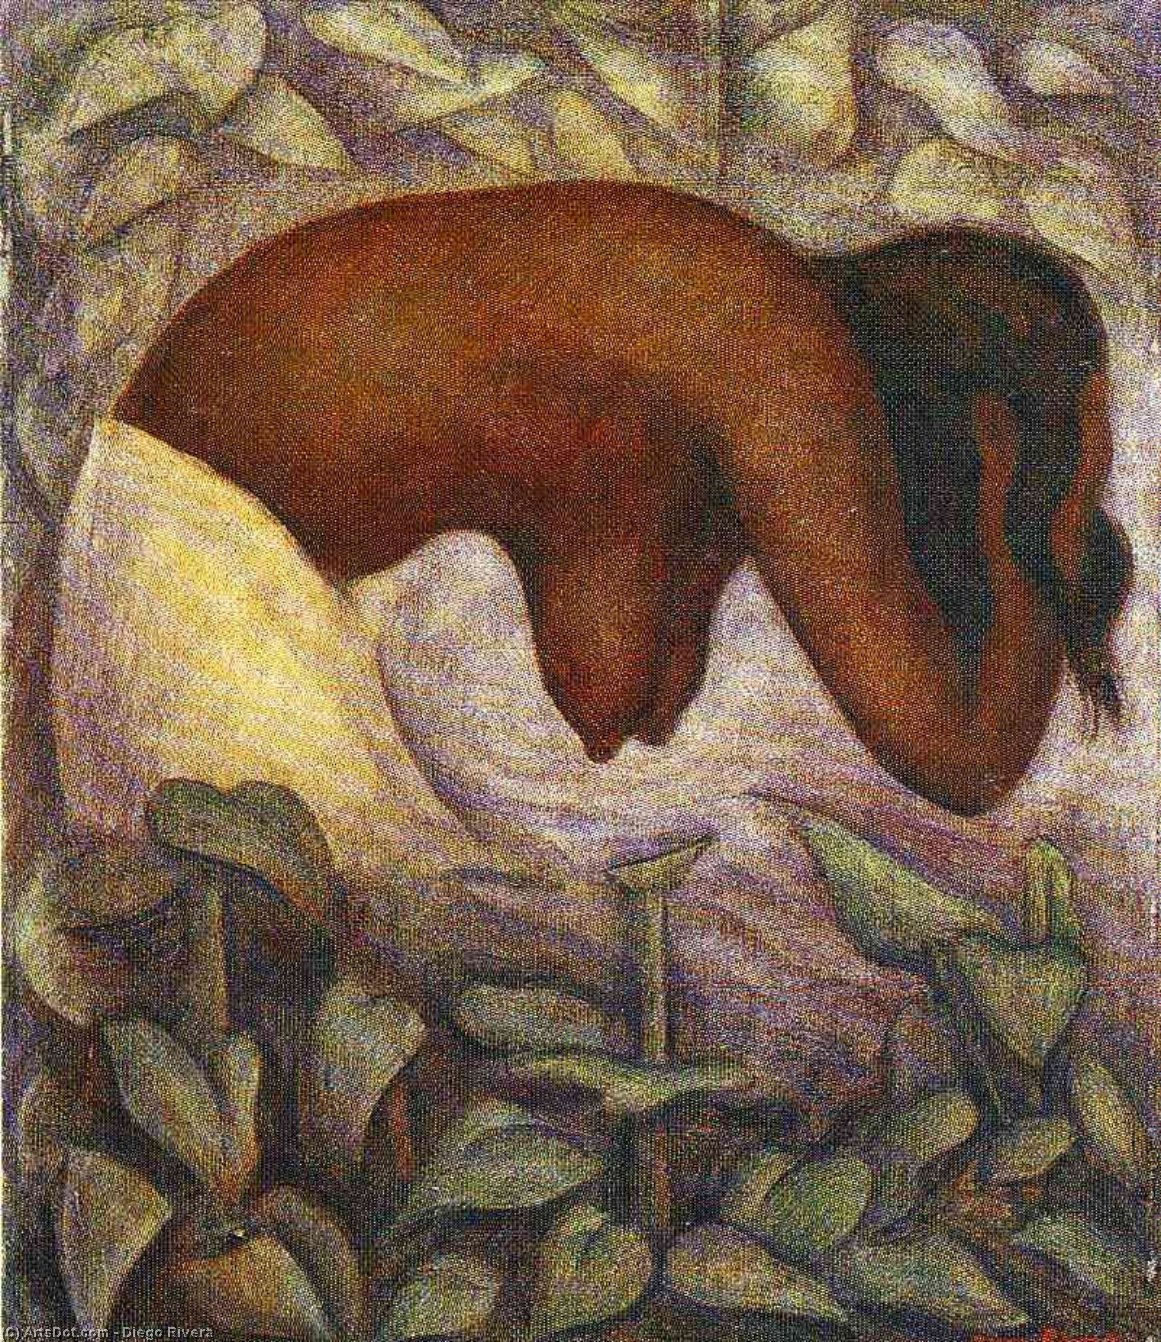 Купальщица Теуантепек, холст, масло по Diego Rivera (1886-1957, Mexico)